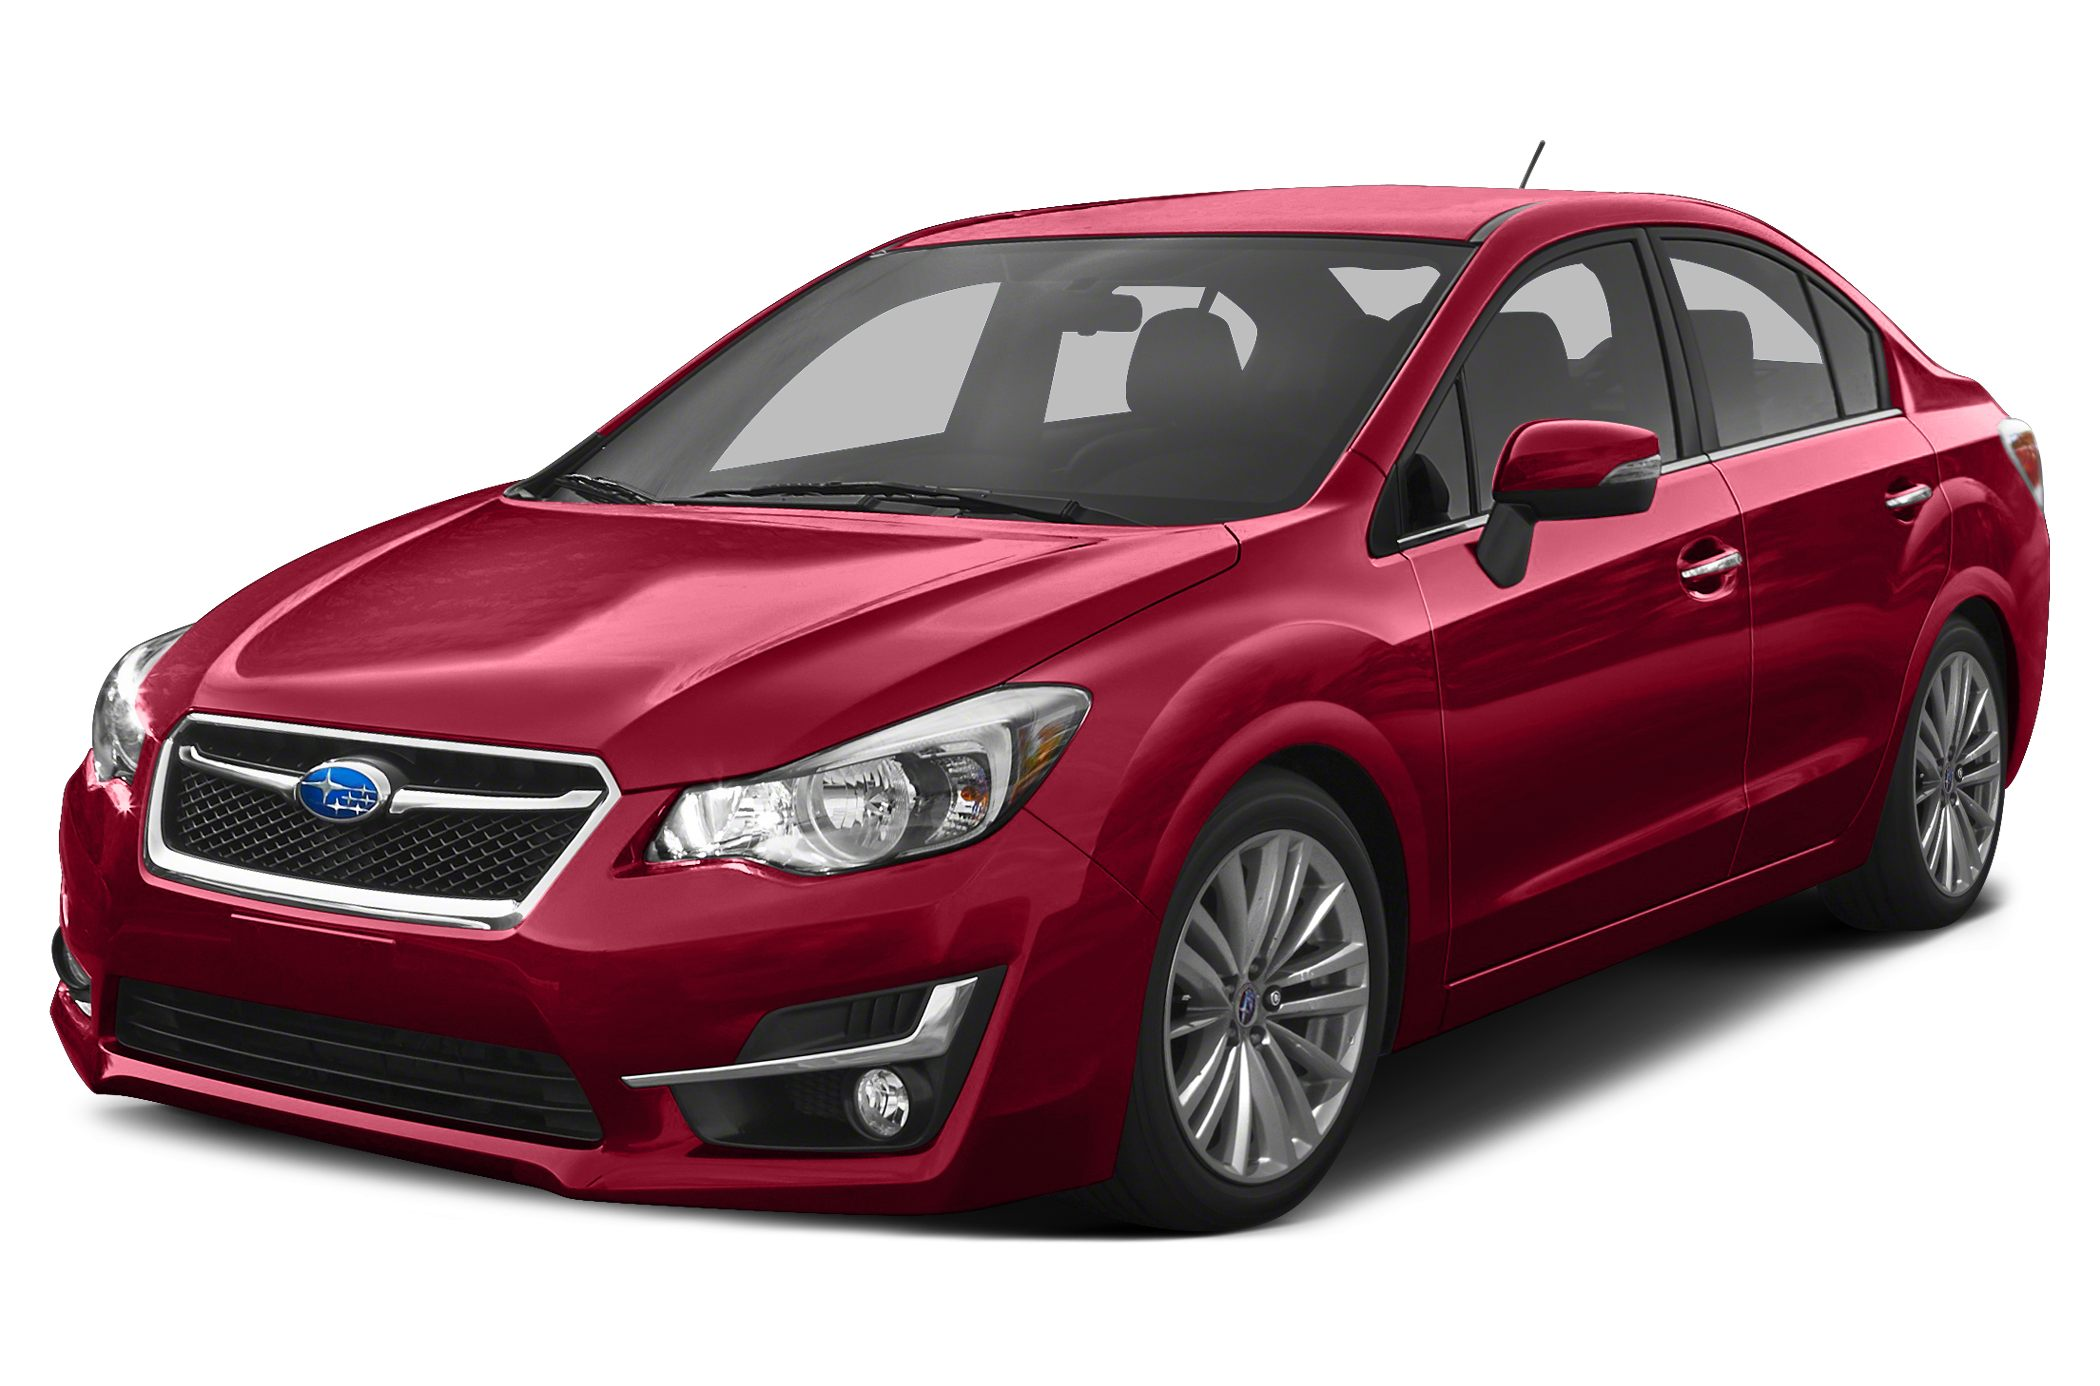 2015 Subaru Impreza 2.0i Premium Sedan for sale in Moosic for $22,756 with 0 miles